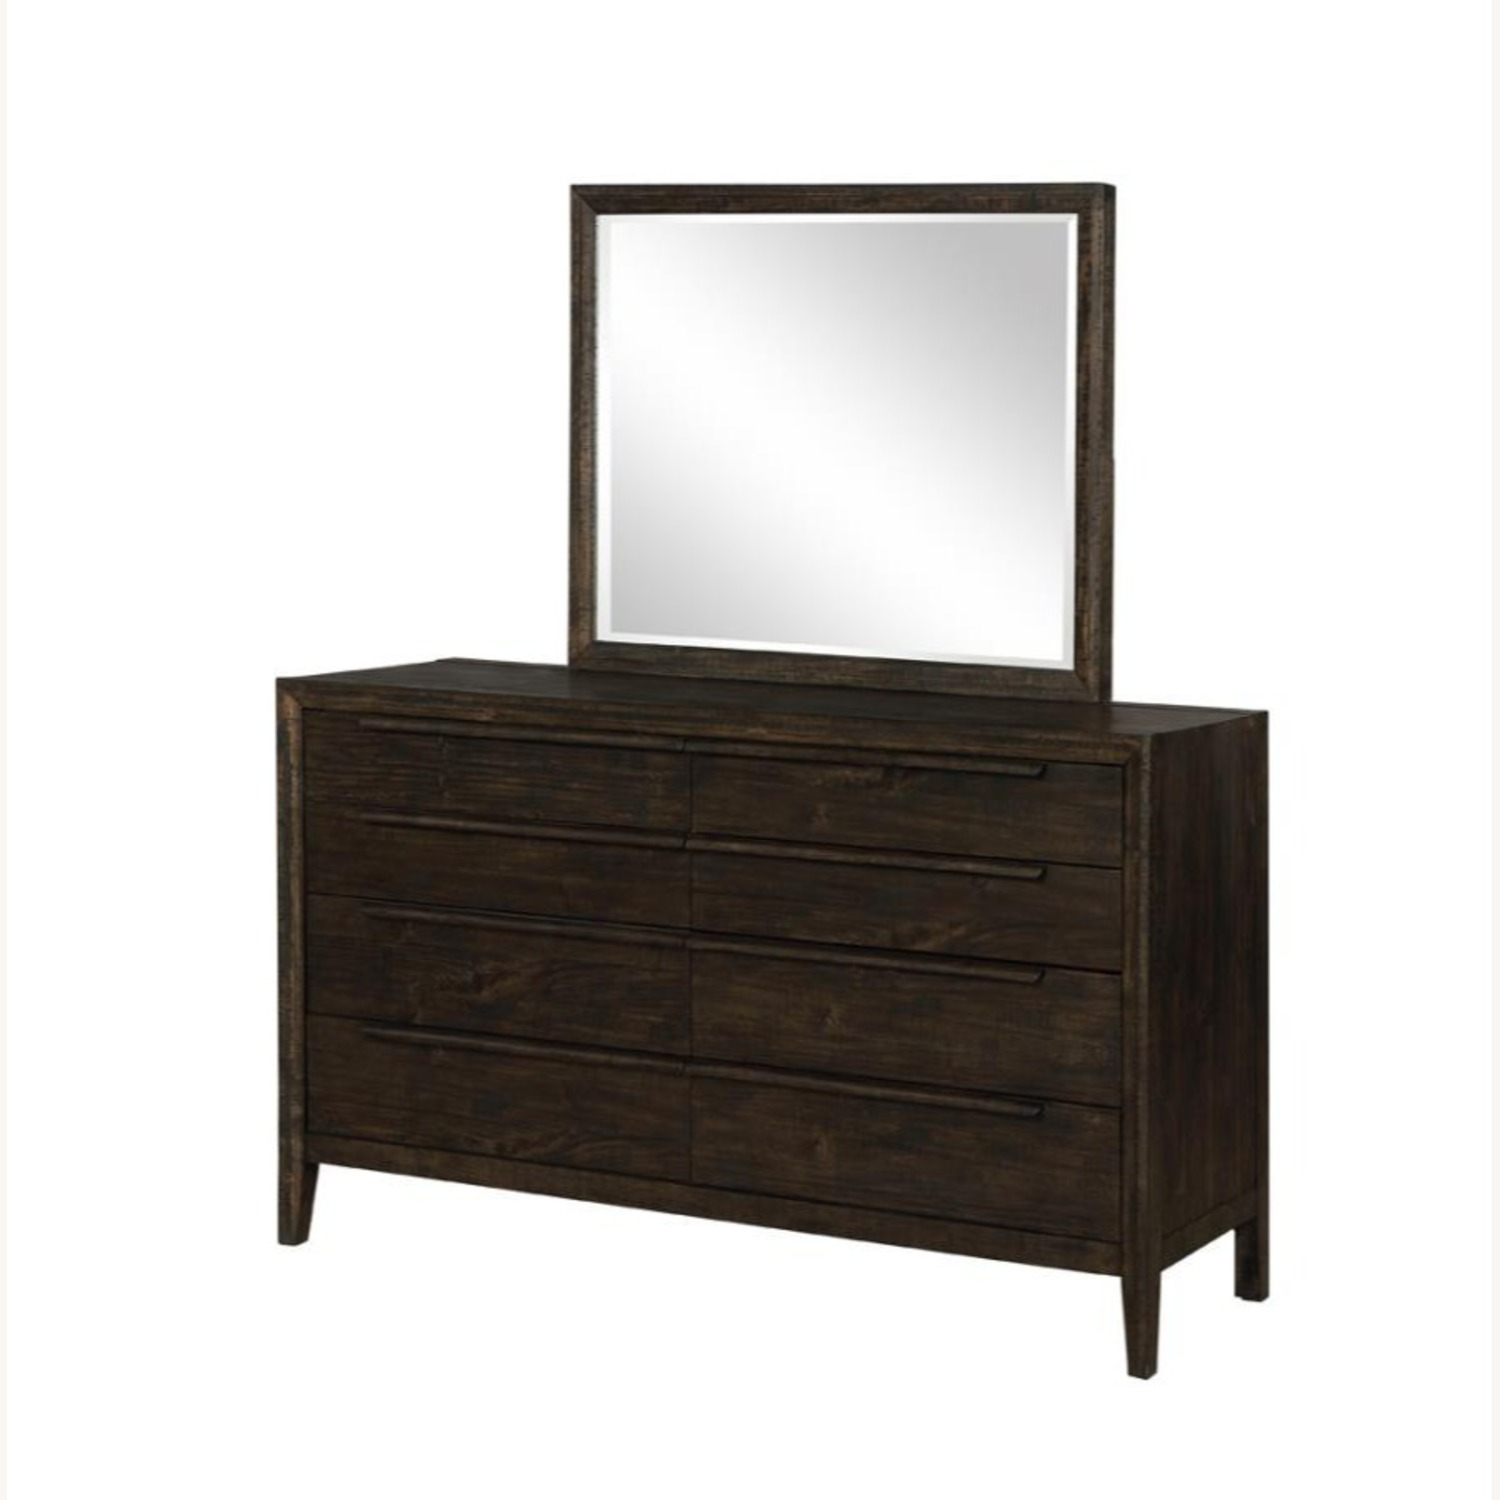 Modern Classic Style Dresser In French Press Wood - image-2